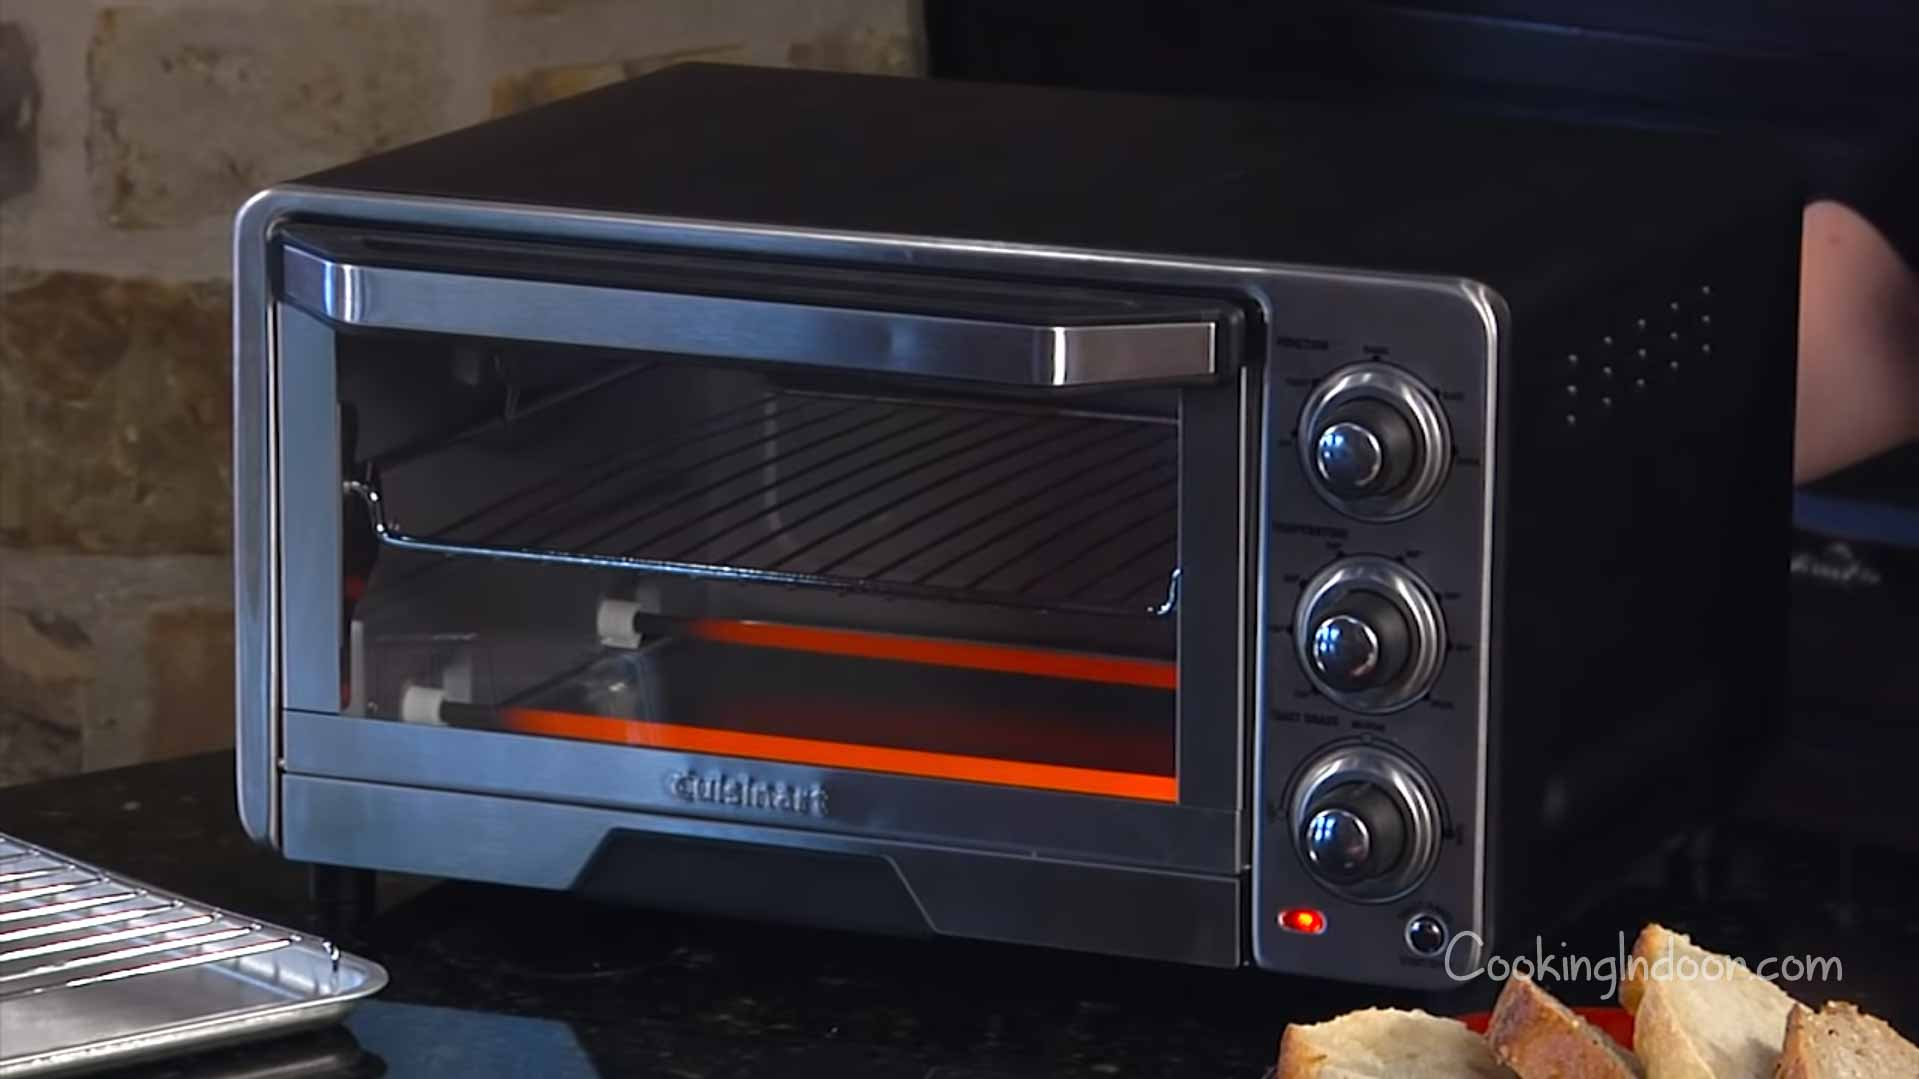 Best Toaster Oven 2020.The Best 3 Infrared Toaster Ovens In 2019 Cooking Indoor